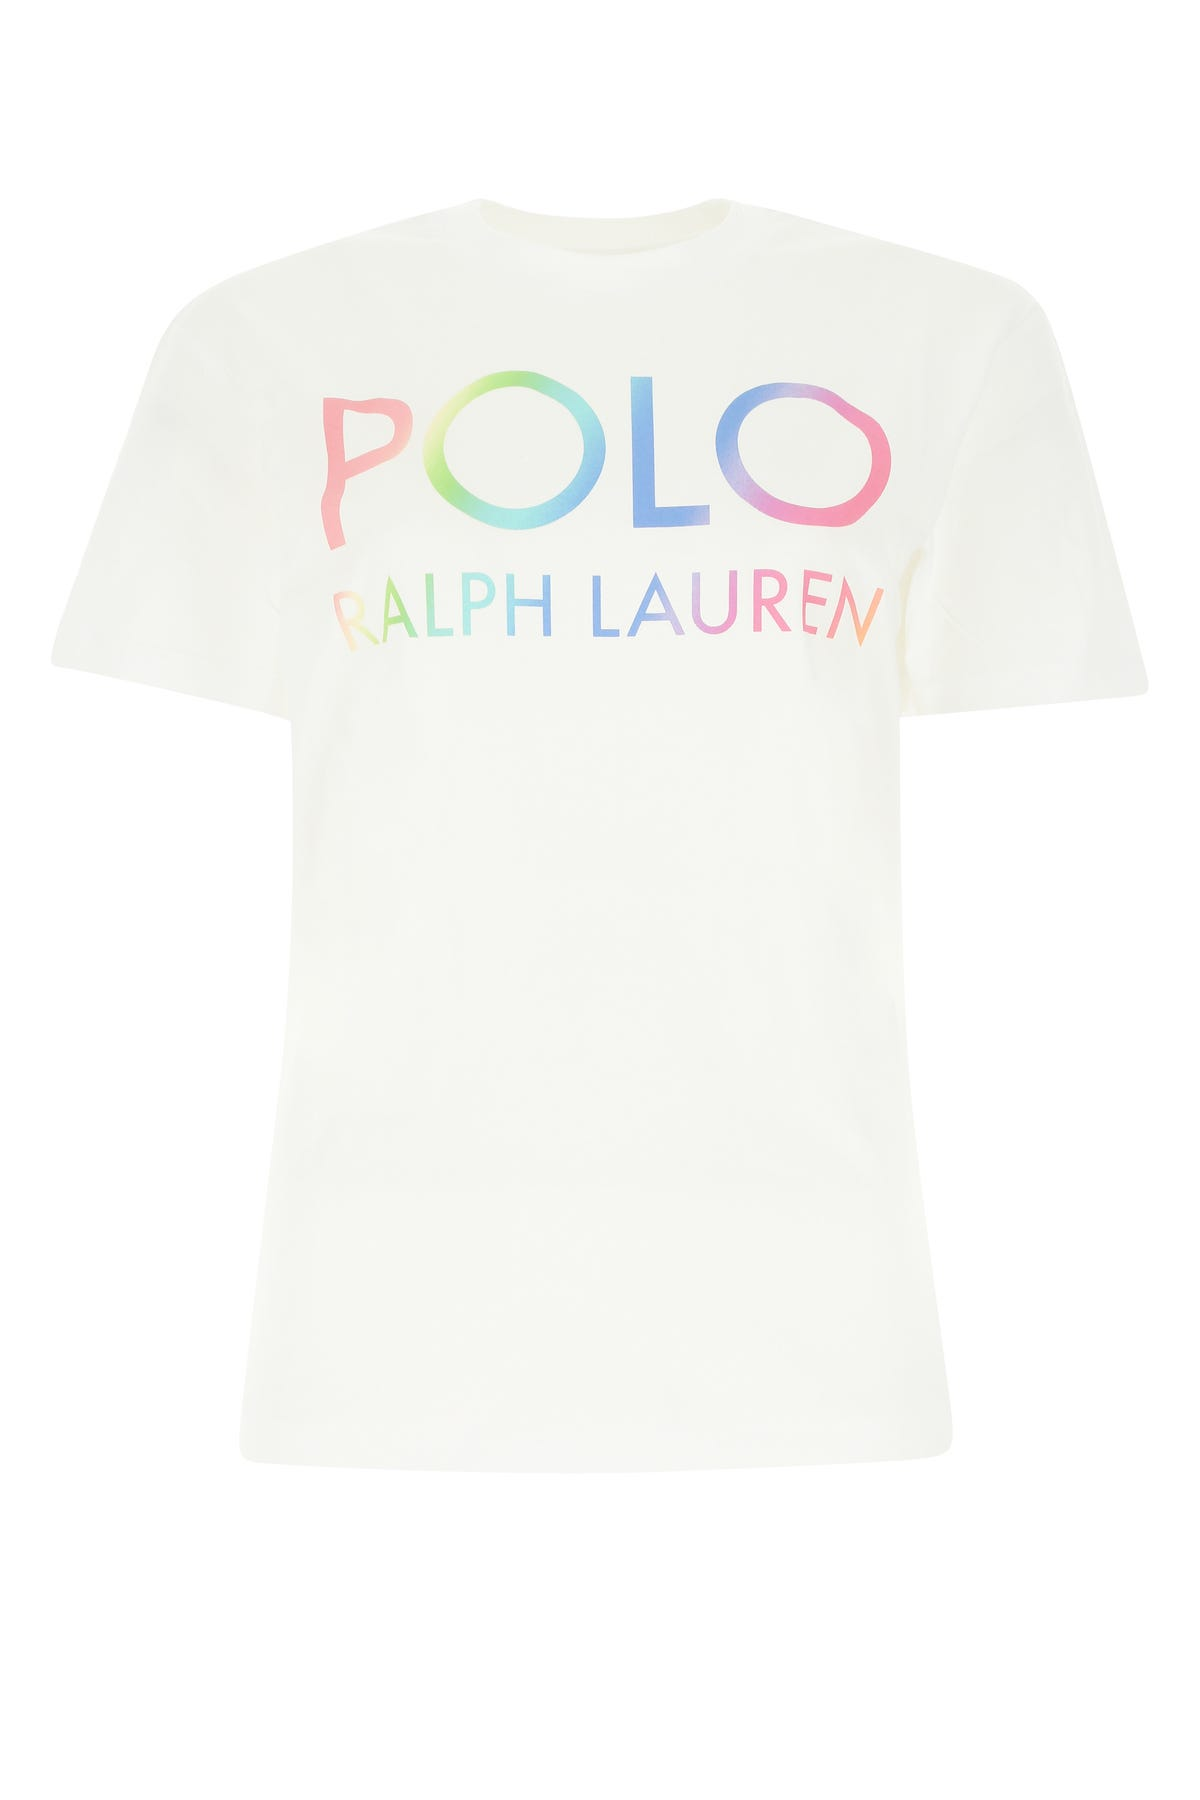 Polo Ralph Lauren WHITE COTTON T-SHIRT  ND POLO RALPH LAUREN DONNA XL